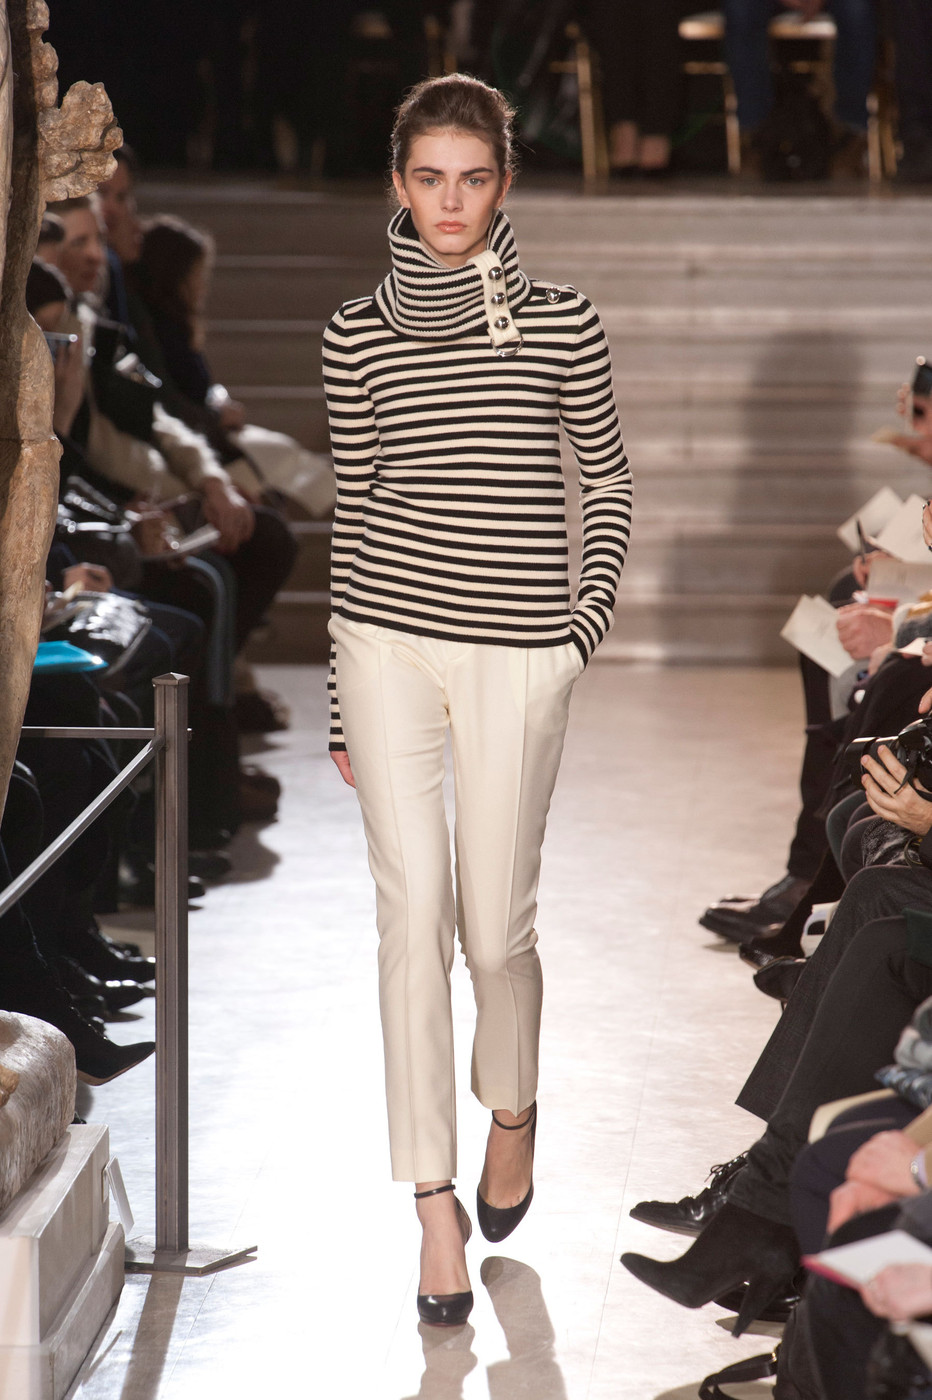 Bouchra Jarrar Haute Couture Spring-Summer 2013 / Lanvin new fashion designer via www.fashionedbylove.co.uk